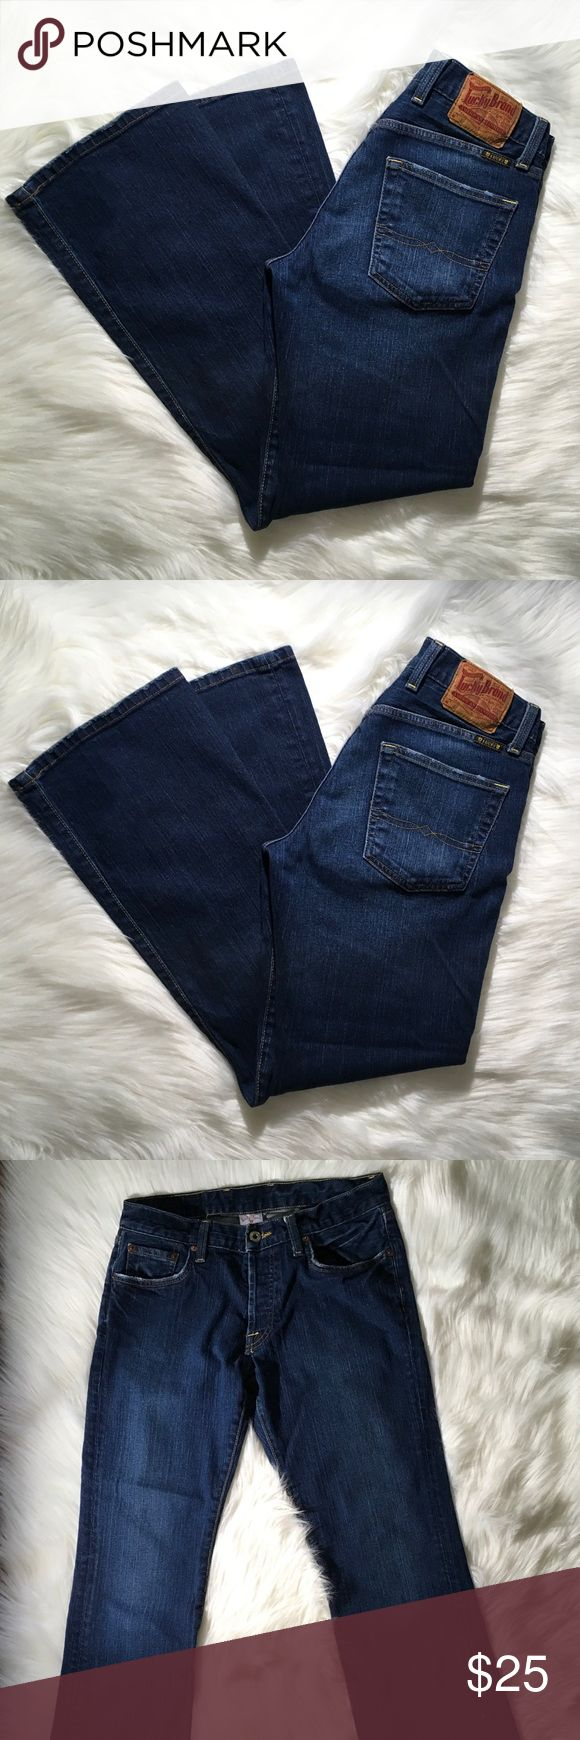 """Lucky Brand Men's Bootleg Jeans 30 X 30 Button Fly Lucky Brand Men's Slim Bootleg Button Closure Jeans Waist 30"""". Inseam 30"""" 100% Cotton- Broken in Jeans Factory Distressed  Waist 15"""" laying flat  Hip 19"""" laying flat  Thigh 9"""" laying flat  Broken- in Dark wash with fading from washing  Some Distressing on Pockets & Hems from use Clean and Smoke Free Home Lucky Brand Jeans Bootcut"""